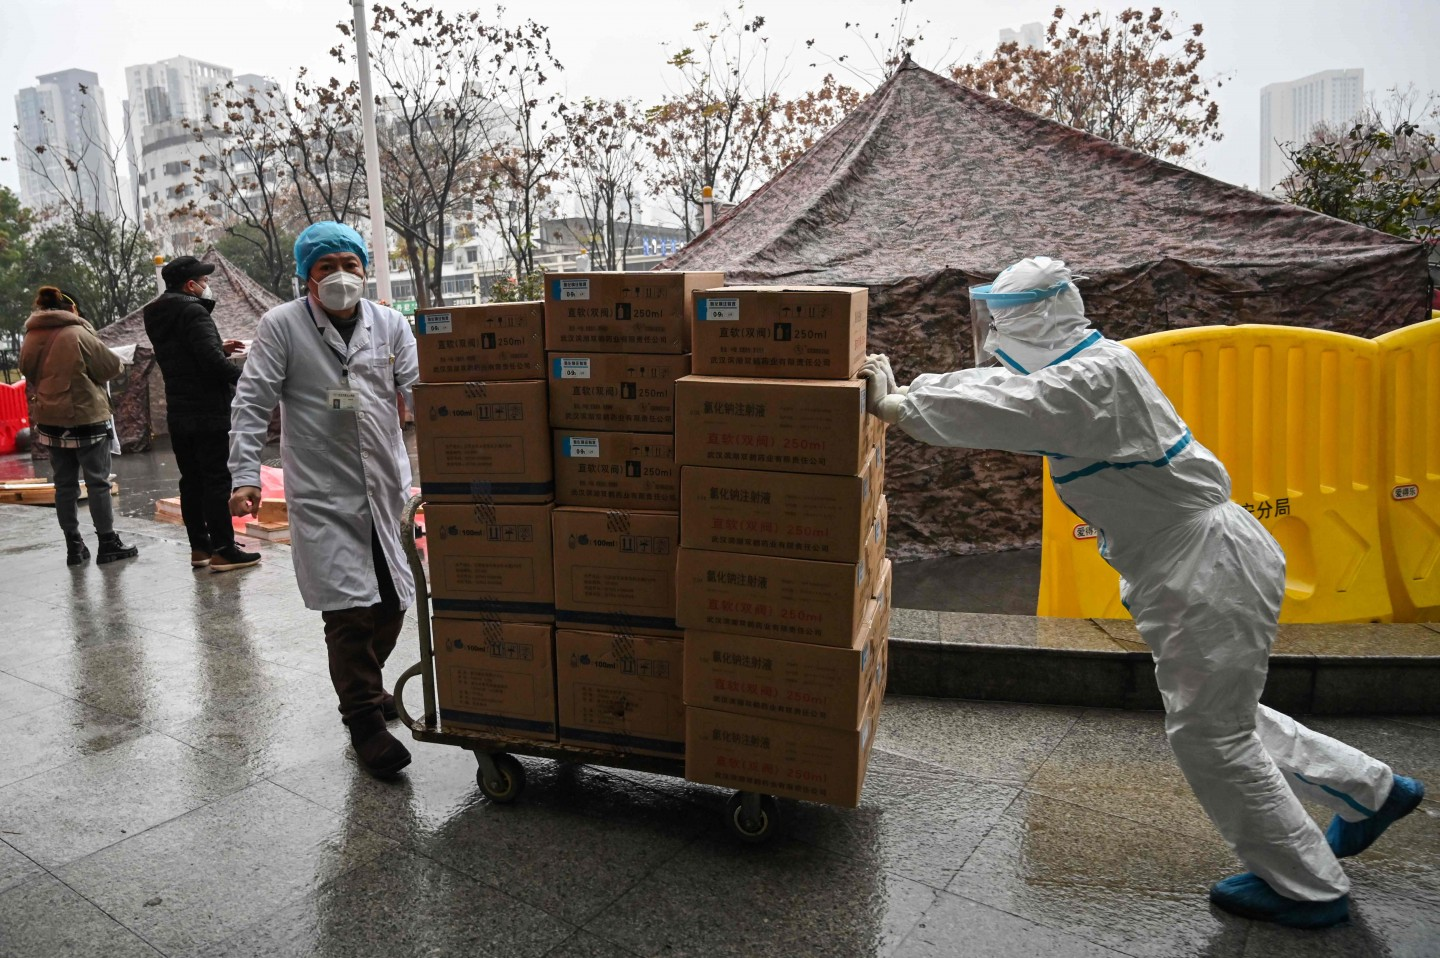 Medical staff transport supplies at the Wuhan Red Cross Hospital in Wuhan on 24 January 2020. (Hector Retamal/AFP)